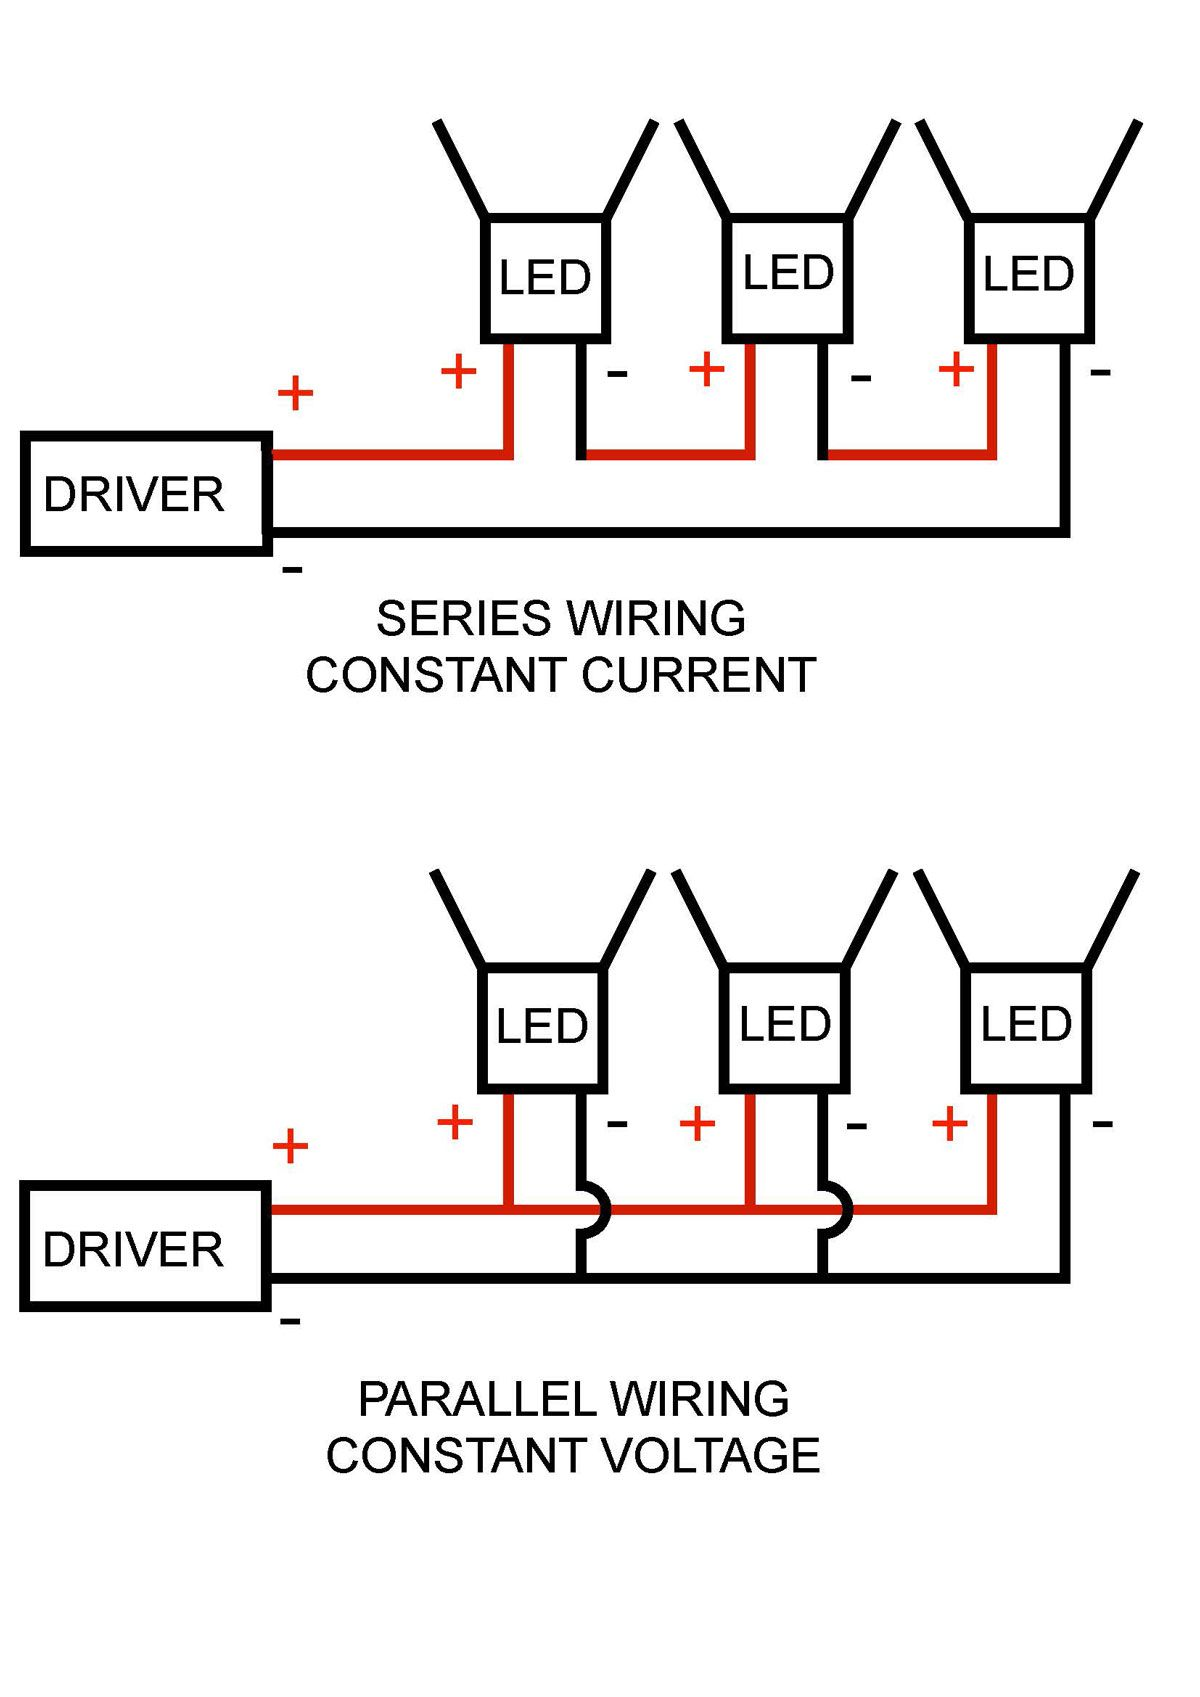 Diagram Fluorescent Lights In Series Wiring Diagram Full Version Hd Quality Wiring Diagram Trackdiagrams Agorasup Fr